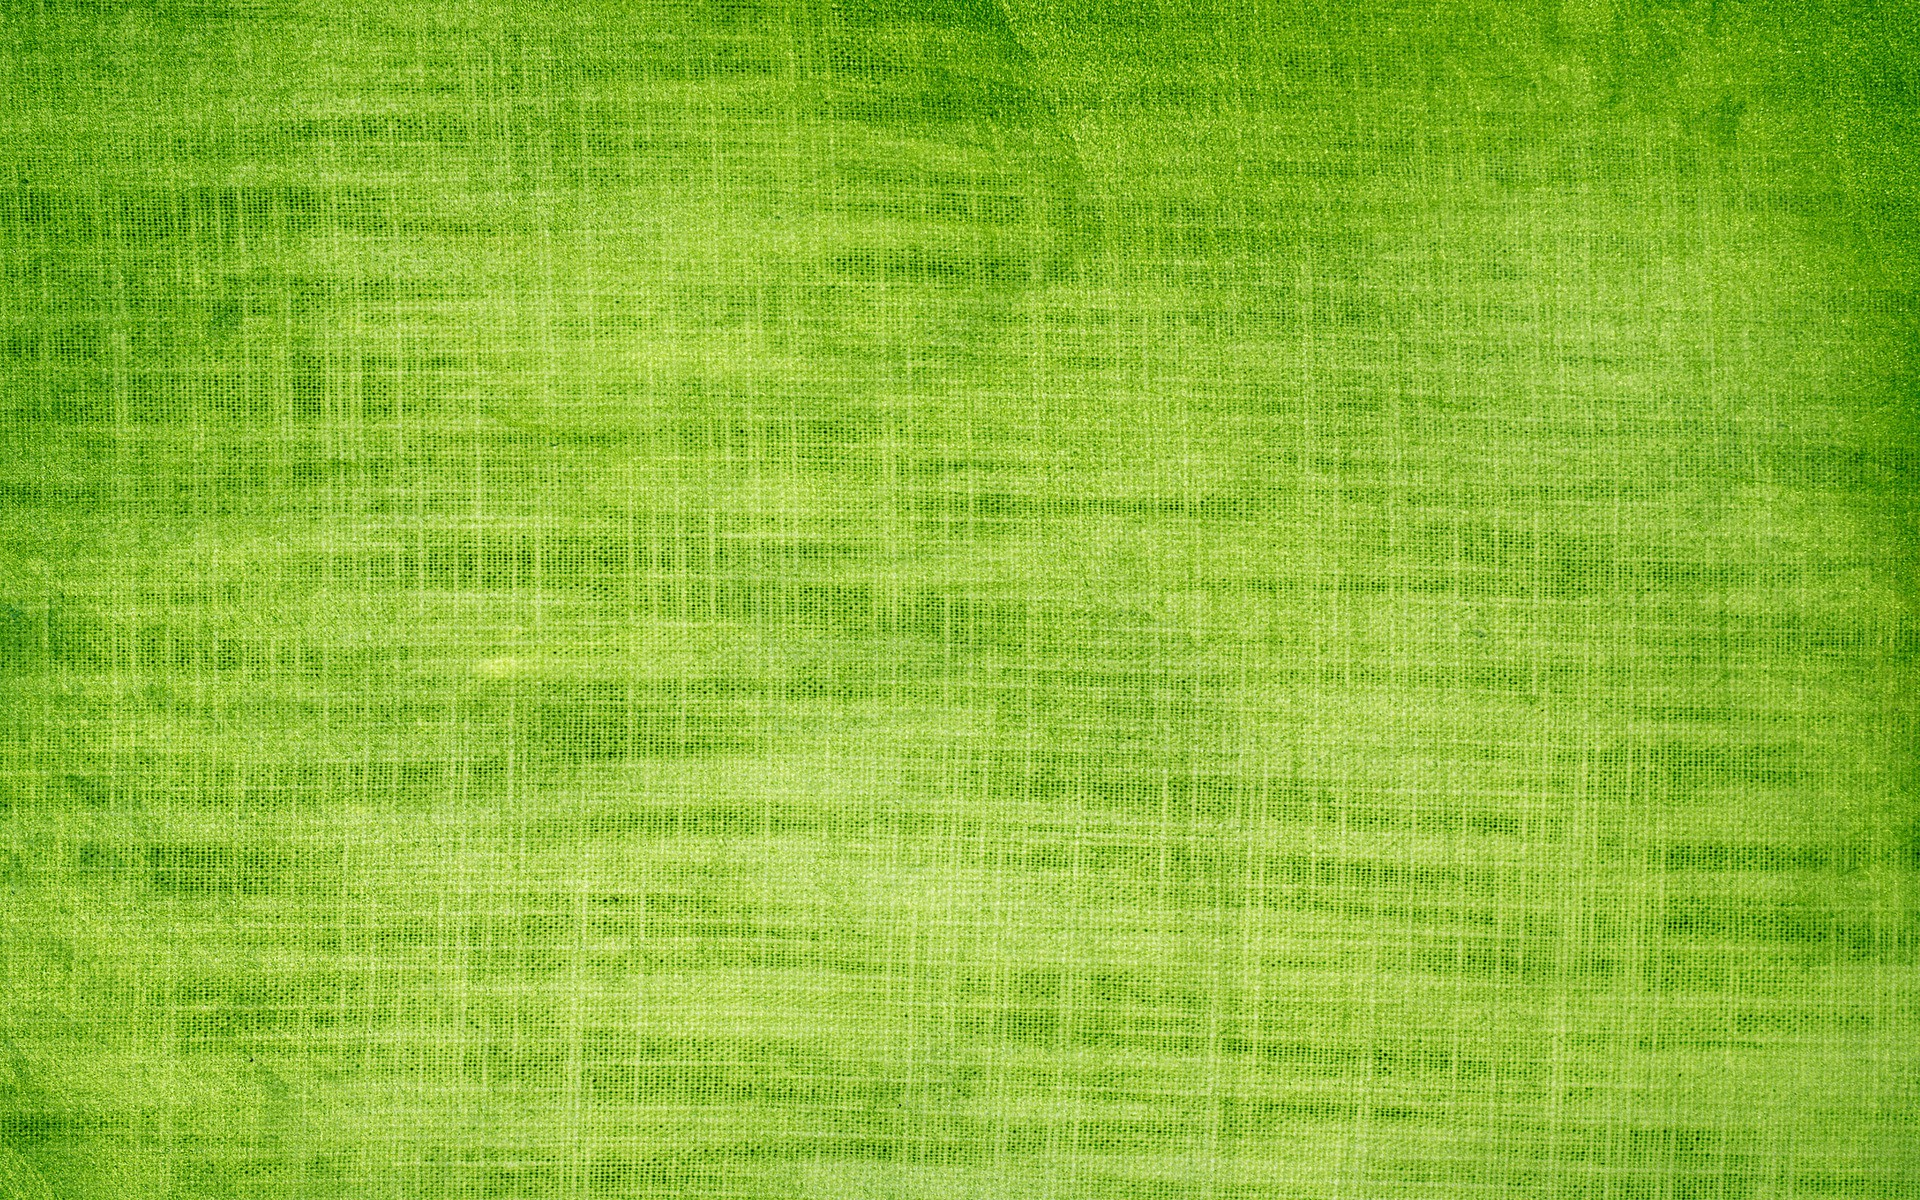 Plain Green Backgrounds 19126 1920x1200 px ~ HDWallSource.com